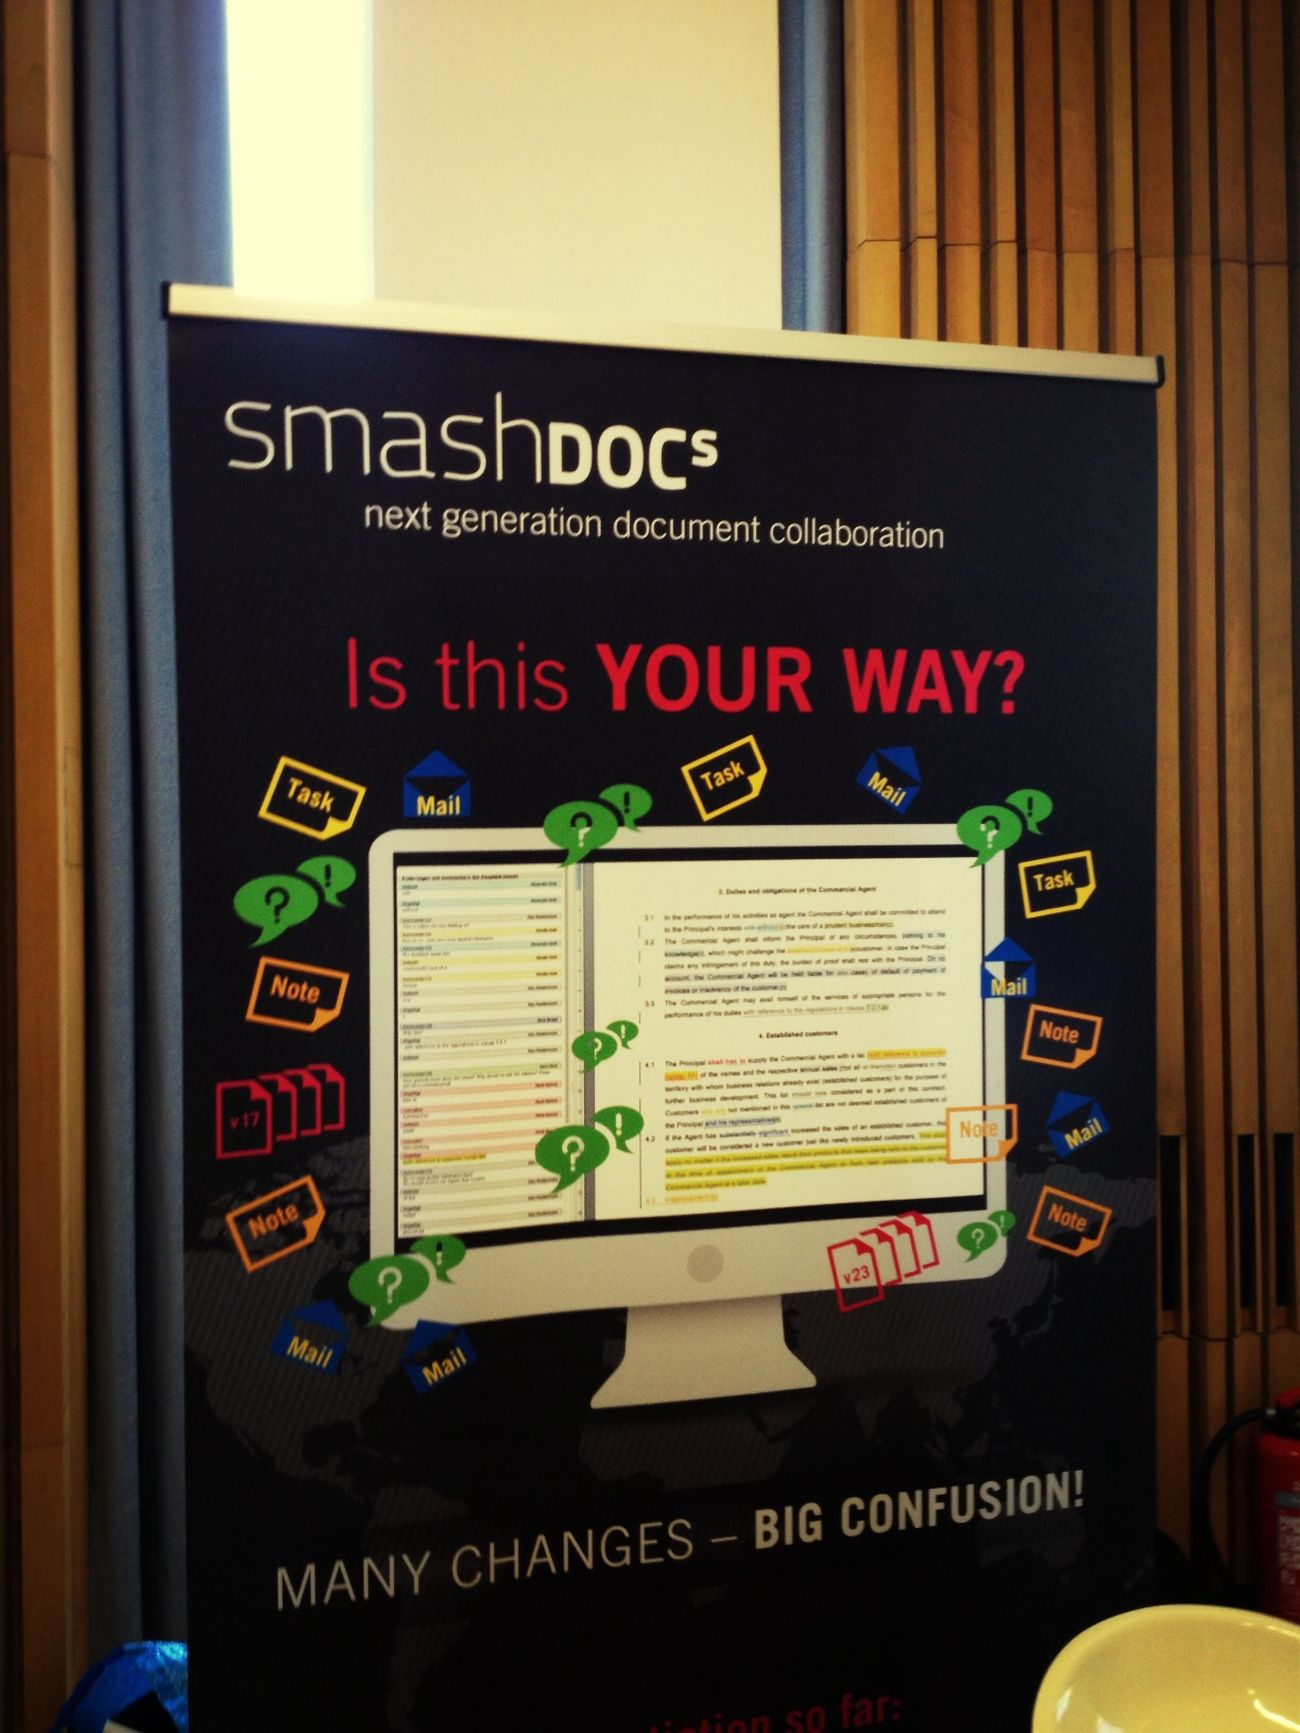 seems useful... lets check it out @smashdoc